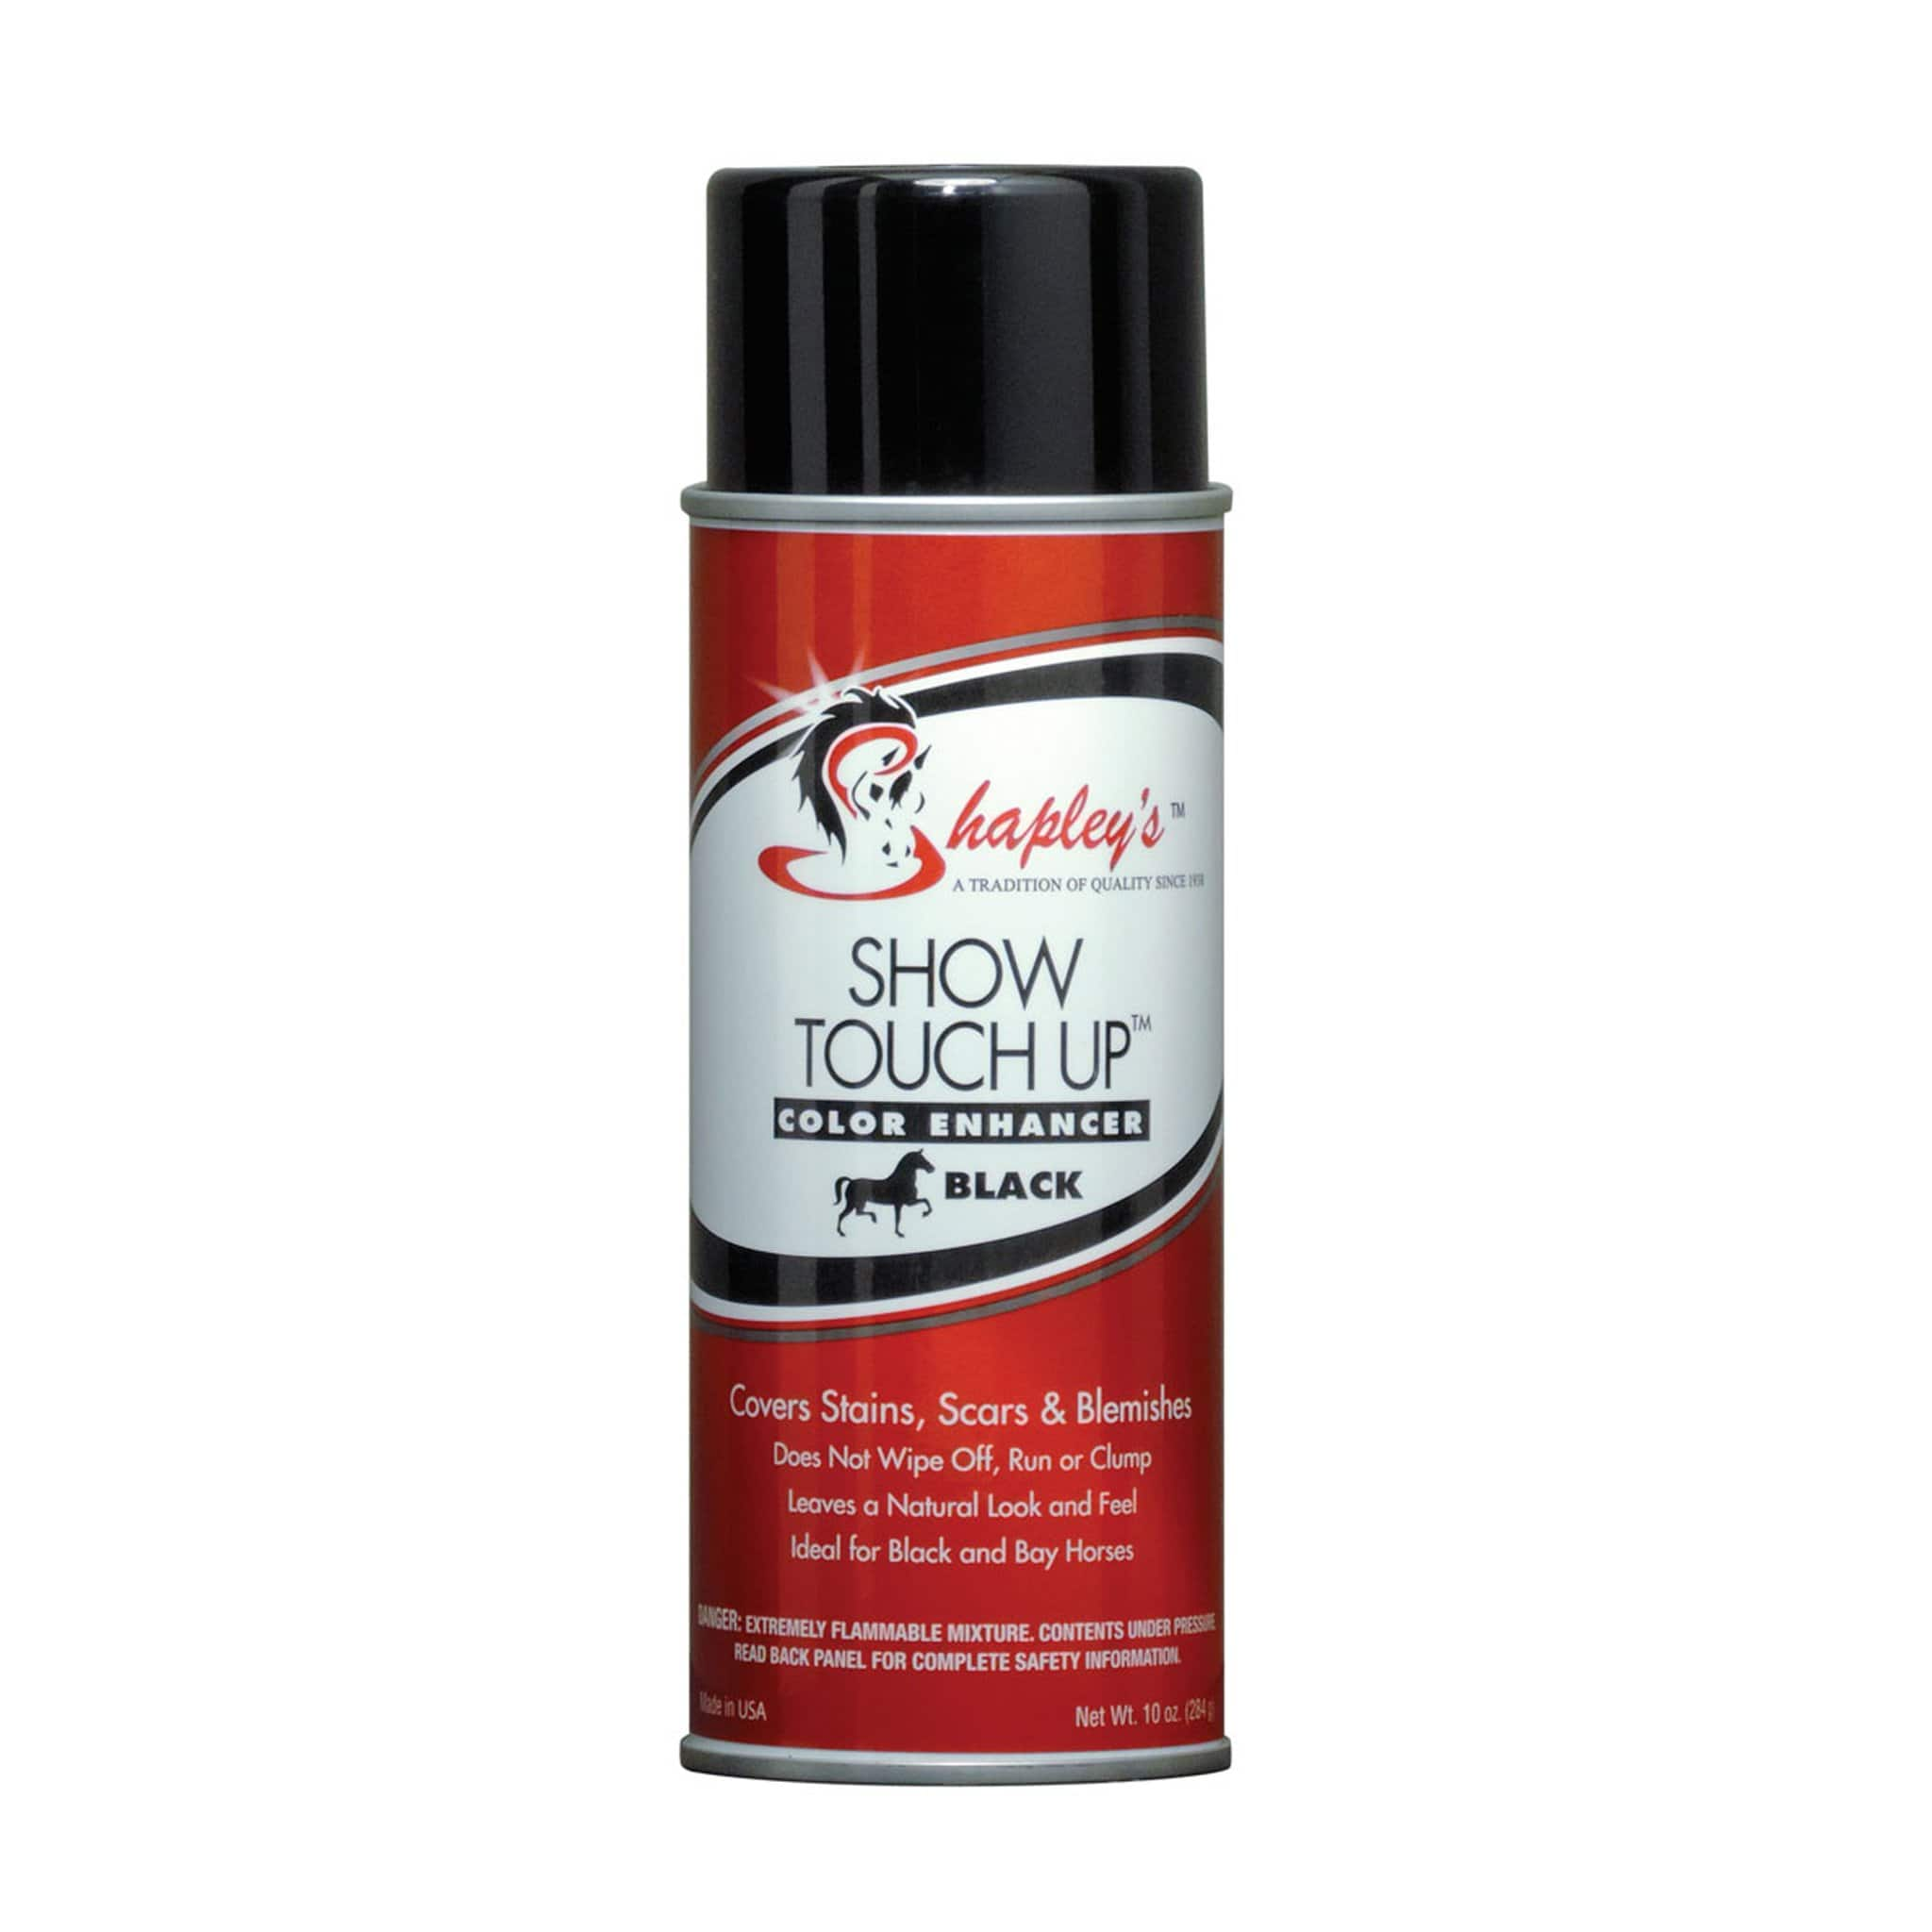 Shapley's Show Touch Up Colour Enhancer Black 25803.